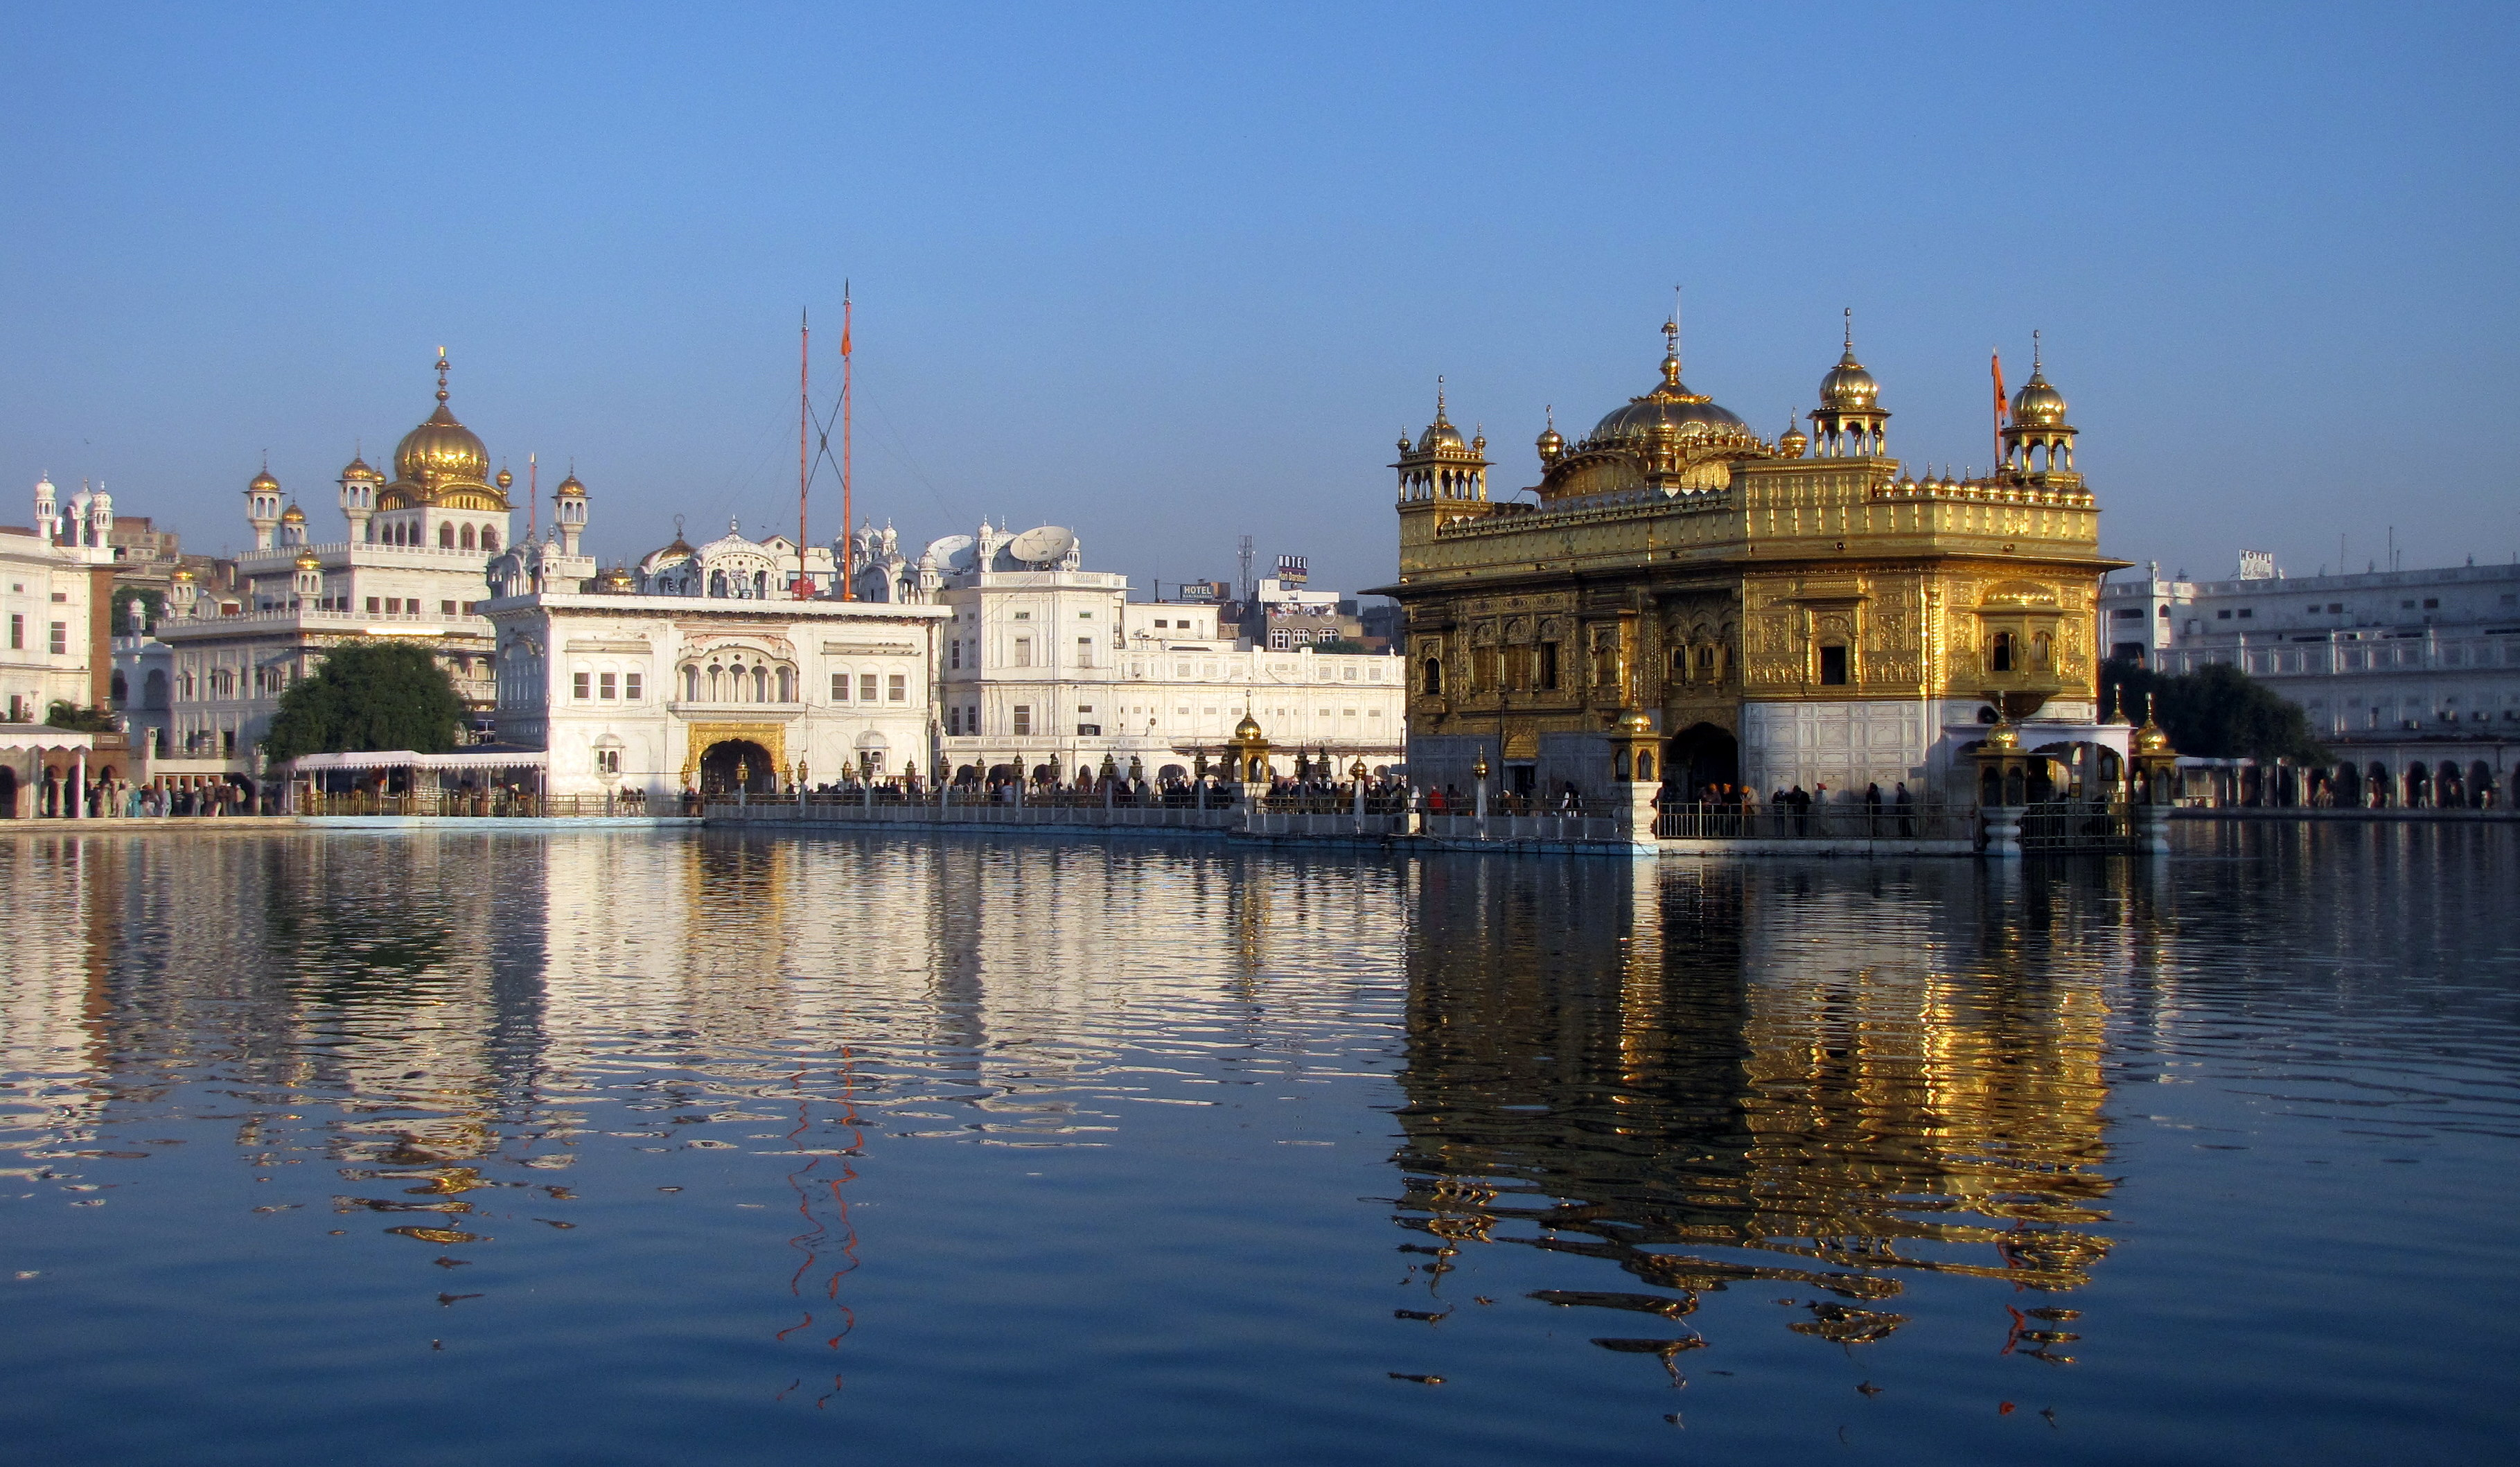 http://upload.wikimedia.org/wikipedia/commons/c/c4/Akal_Takht_and_Harmandir_Sahib,_Amritsar,_Punjab,_India.jpg